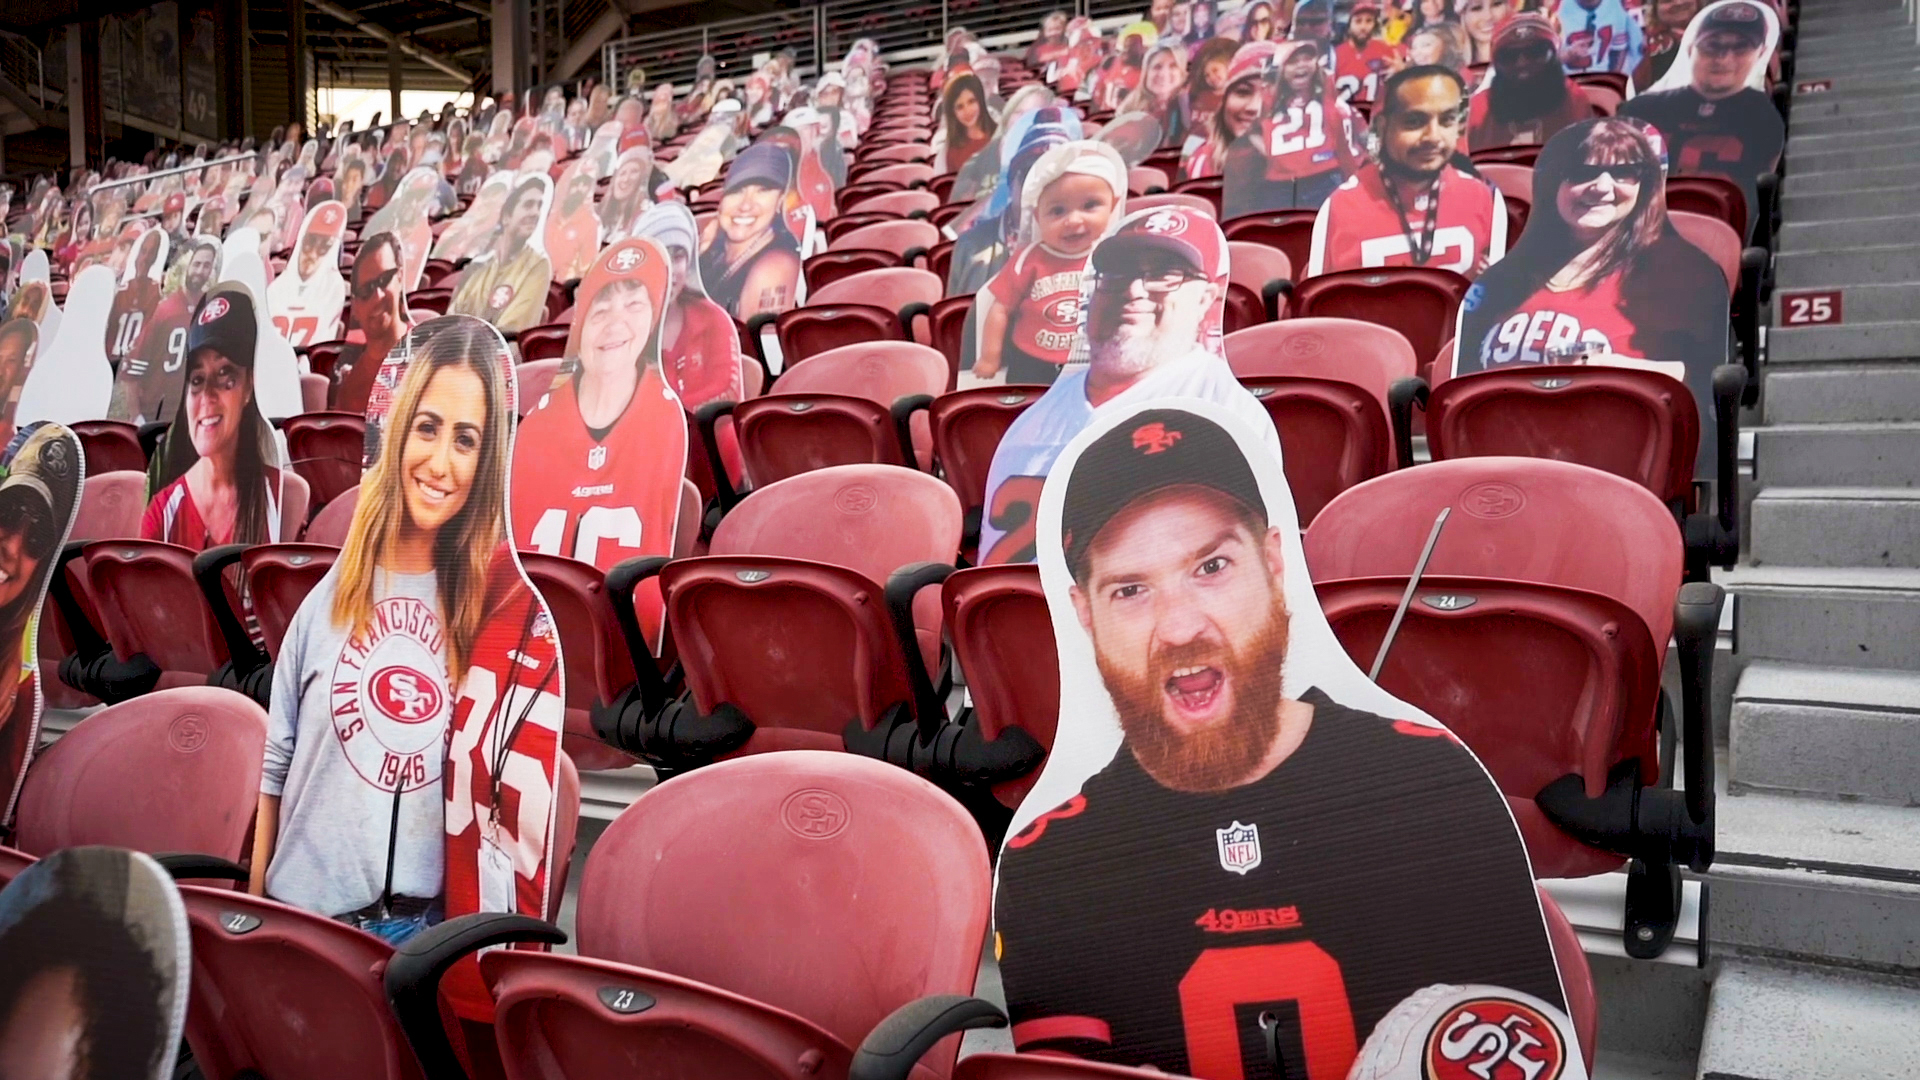 large cut-out photos of fans sit in red stadium seats